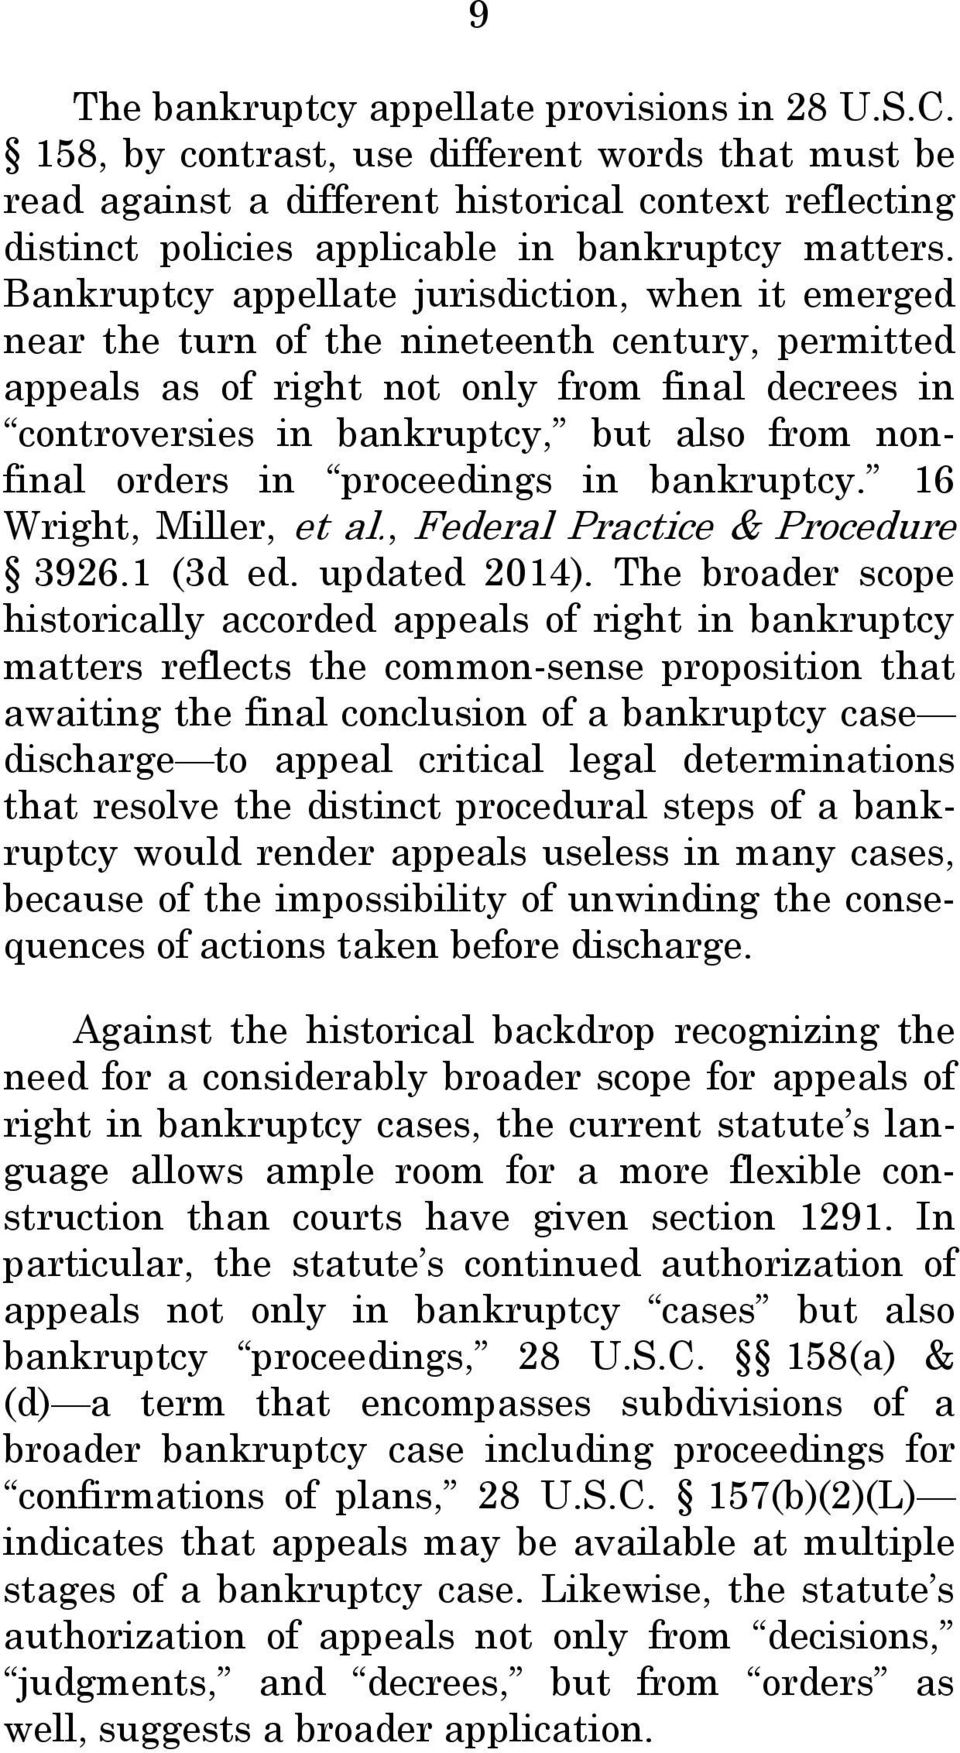 Bankruptcy appellate jurisdiction, when it emerged near the turn of the nineteenth century, permitted appeals as of right not only from final decrees in controversies in bankruptcy, but also from